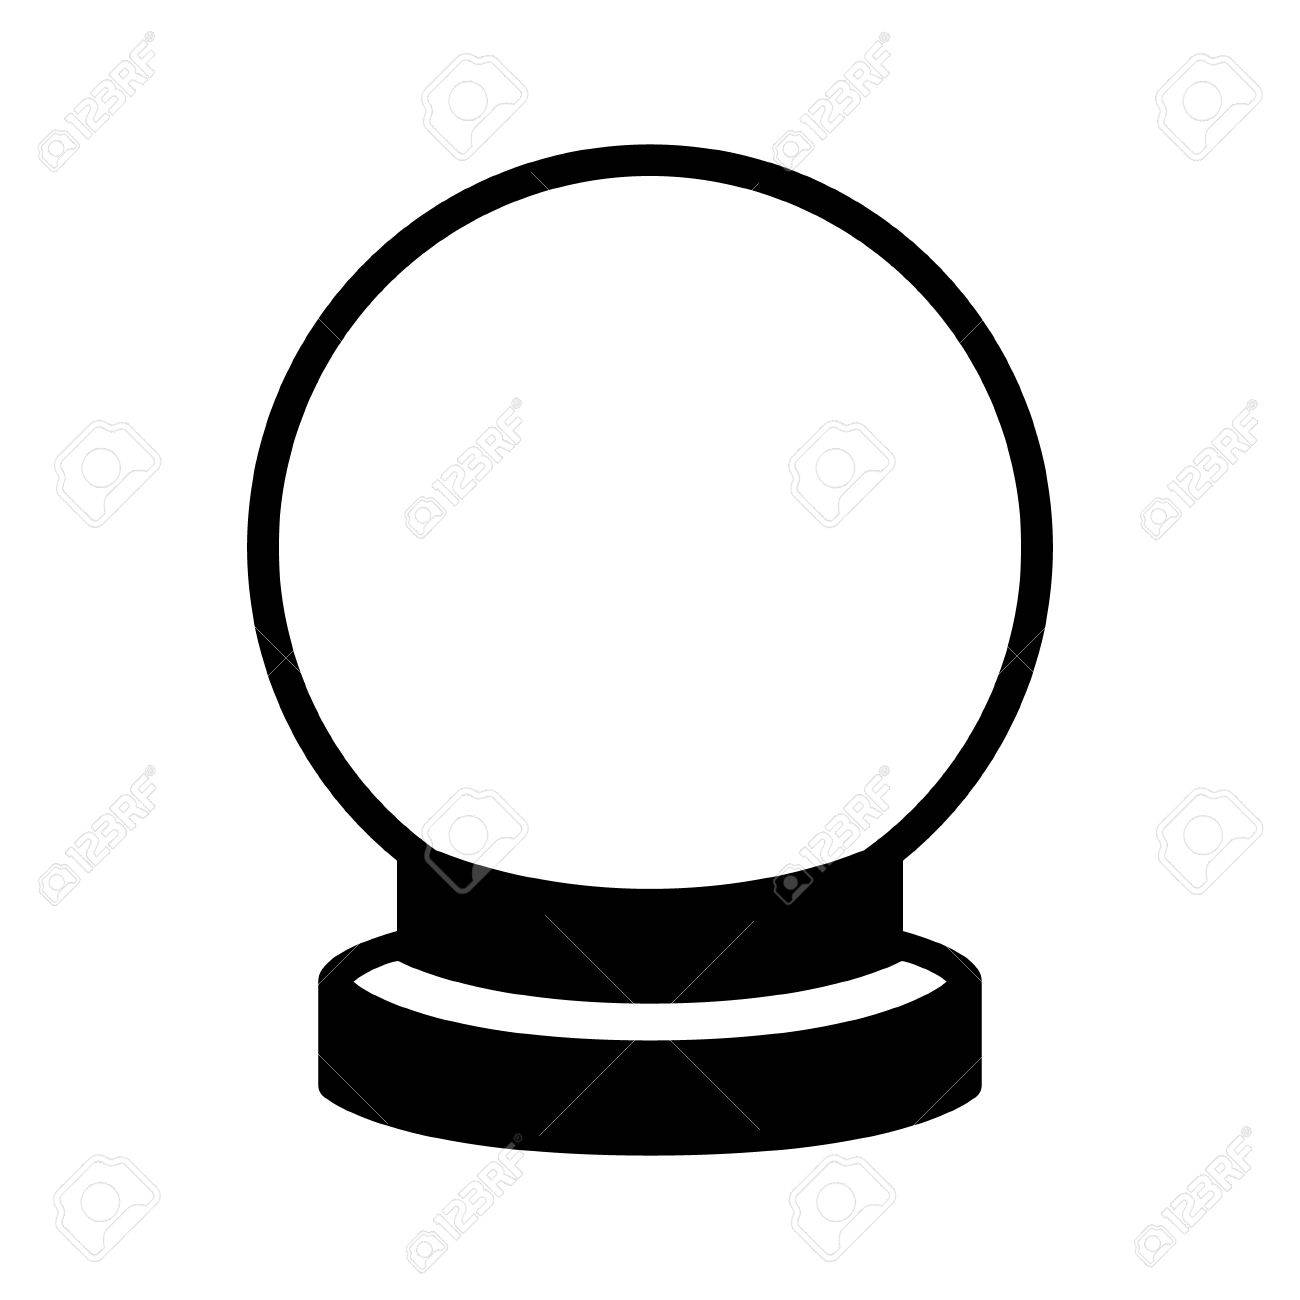 crystal ball of fortune telling flat icon for apps and websites rh 123rf com gypsy crystal ball clip art free crystal ball images clip art